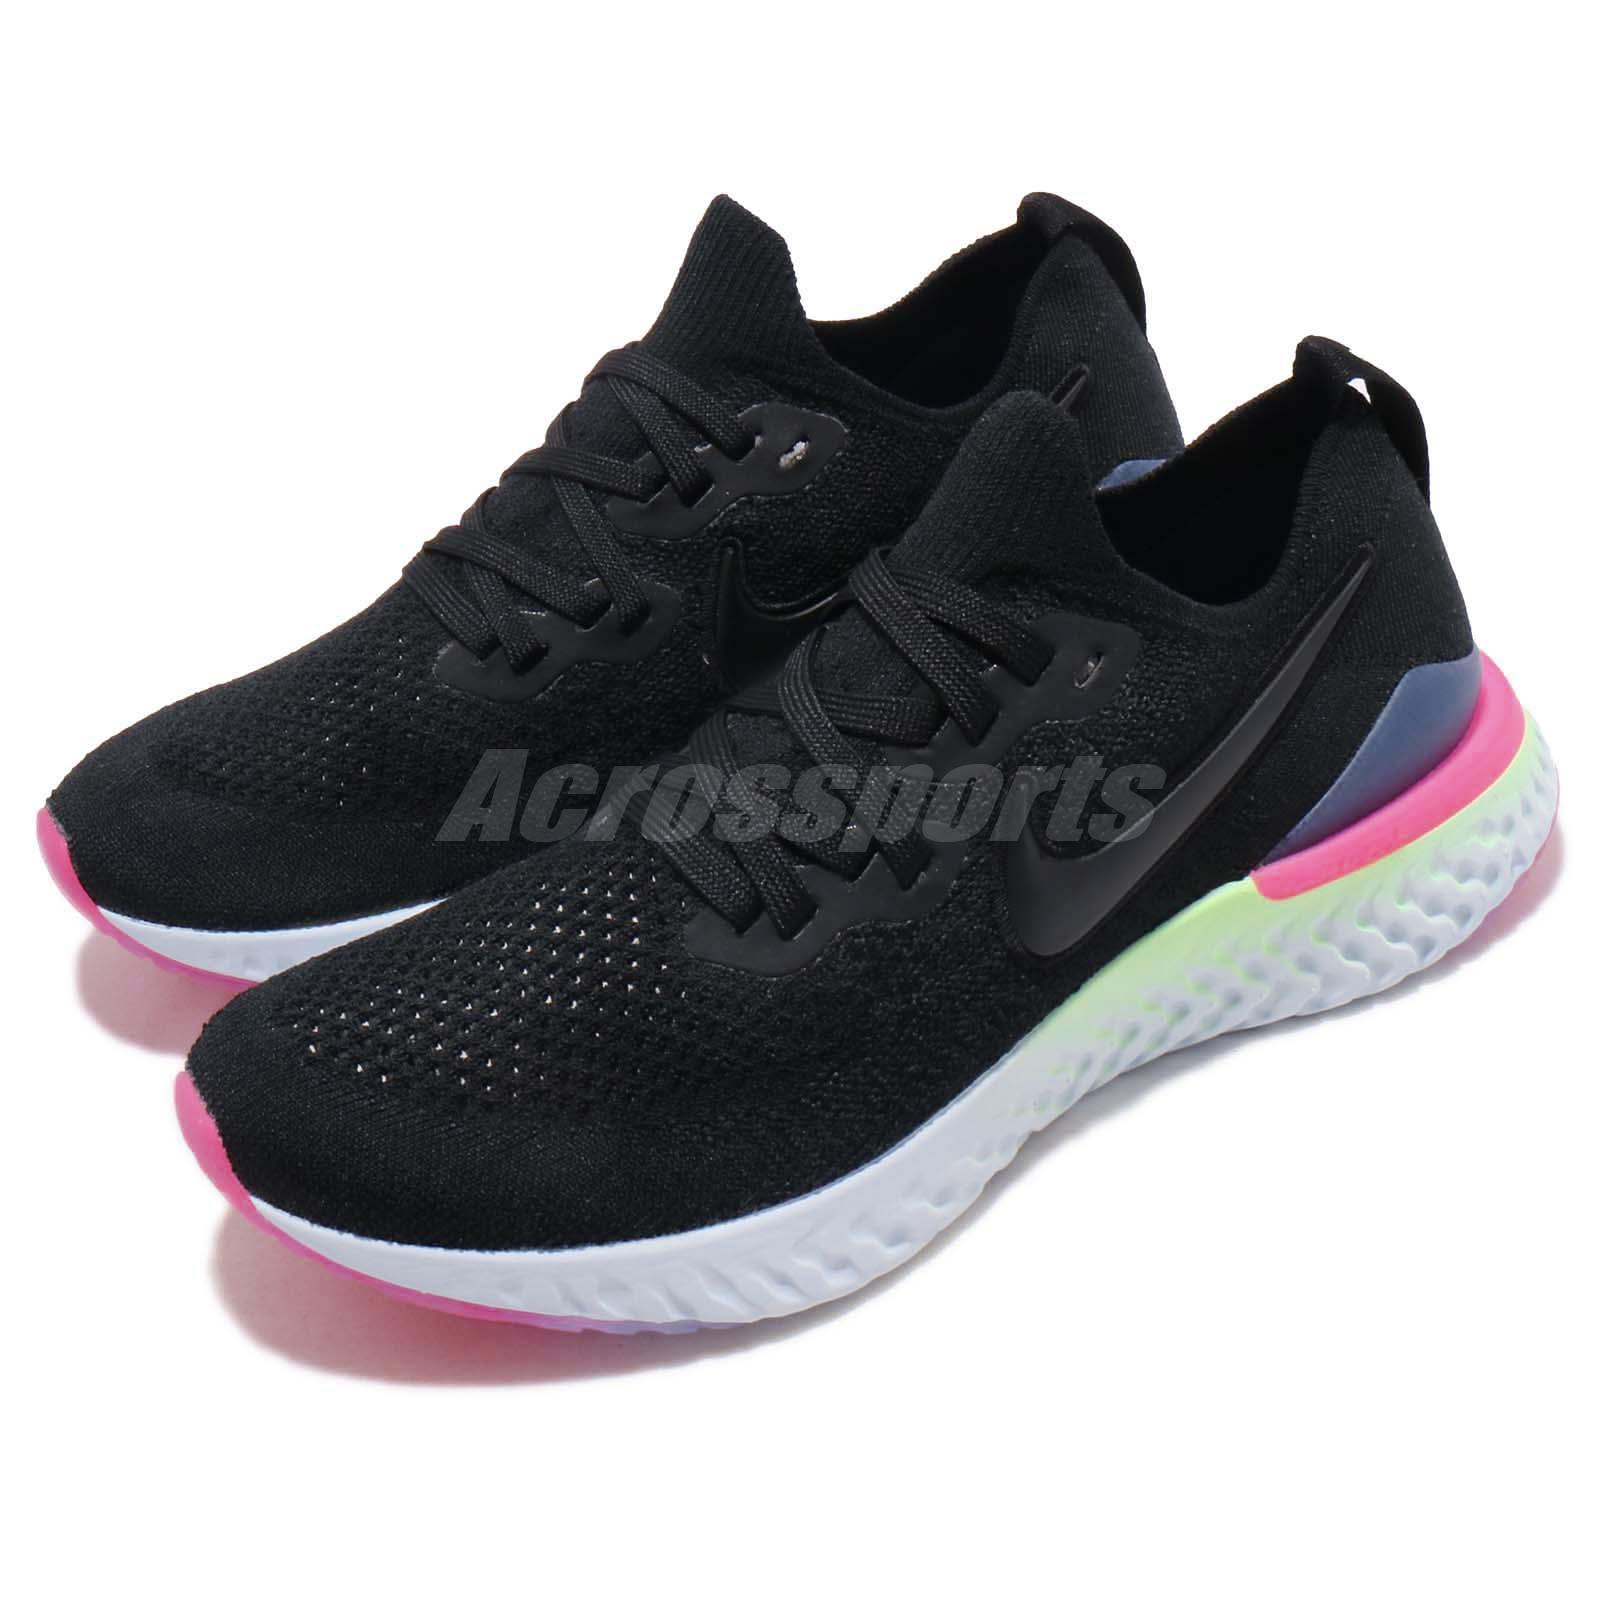 c3fbc7eb808 Details about Nike Wmns Epic React Flyknit 2 II Black Sapphire Women  Running Shoes BQ8927-003